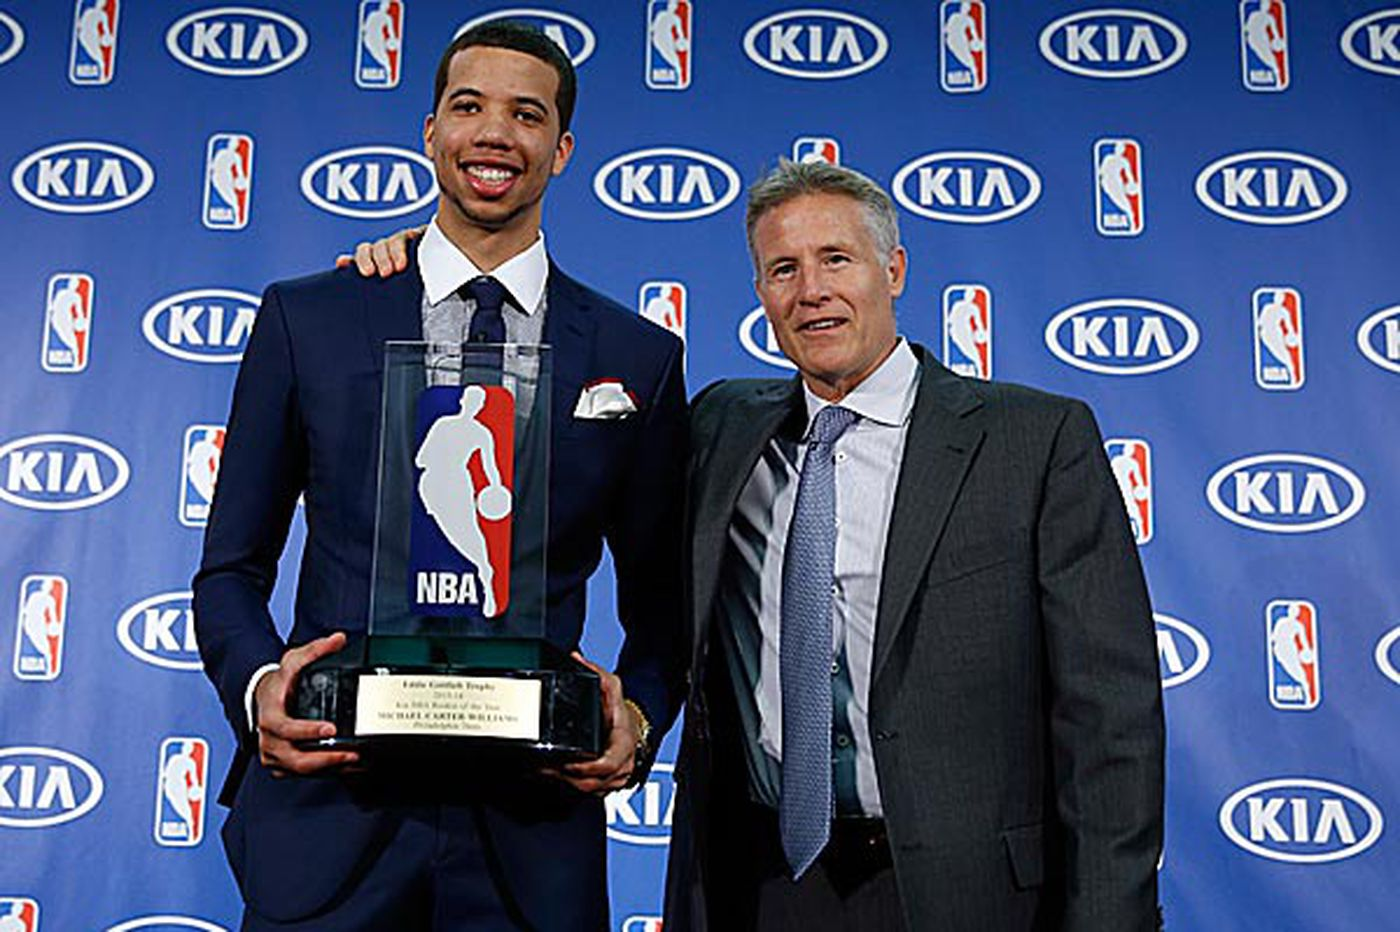 MCW's prize speaks well of Brown's success at the helm of Sixers